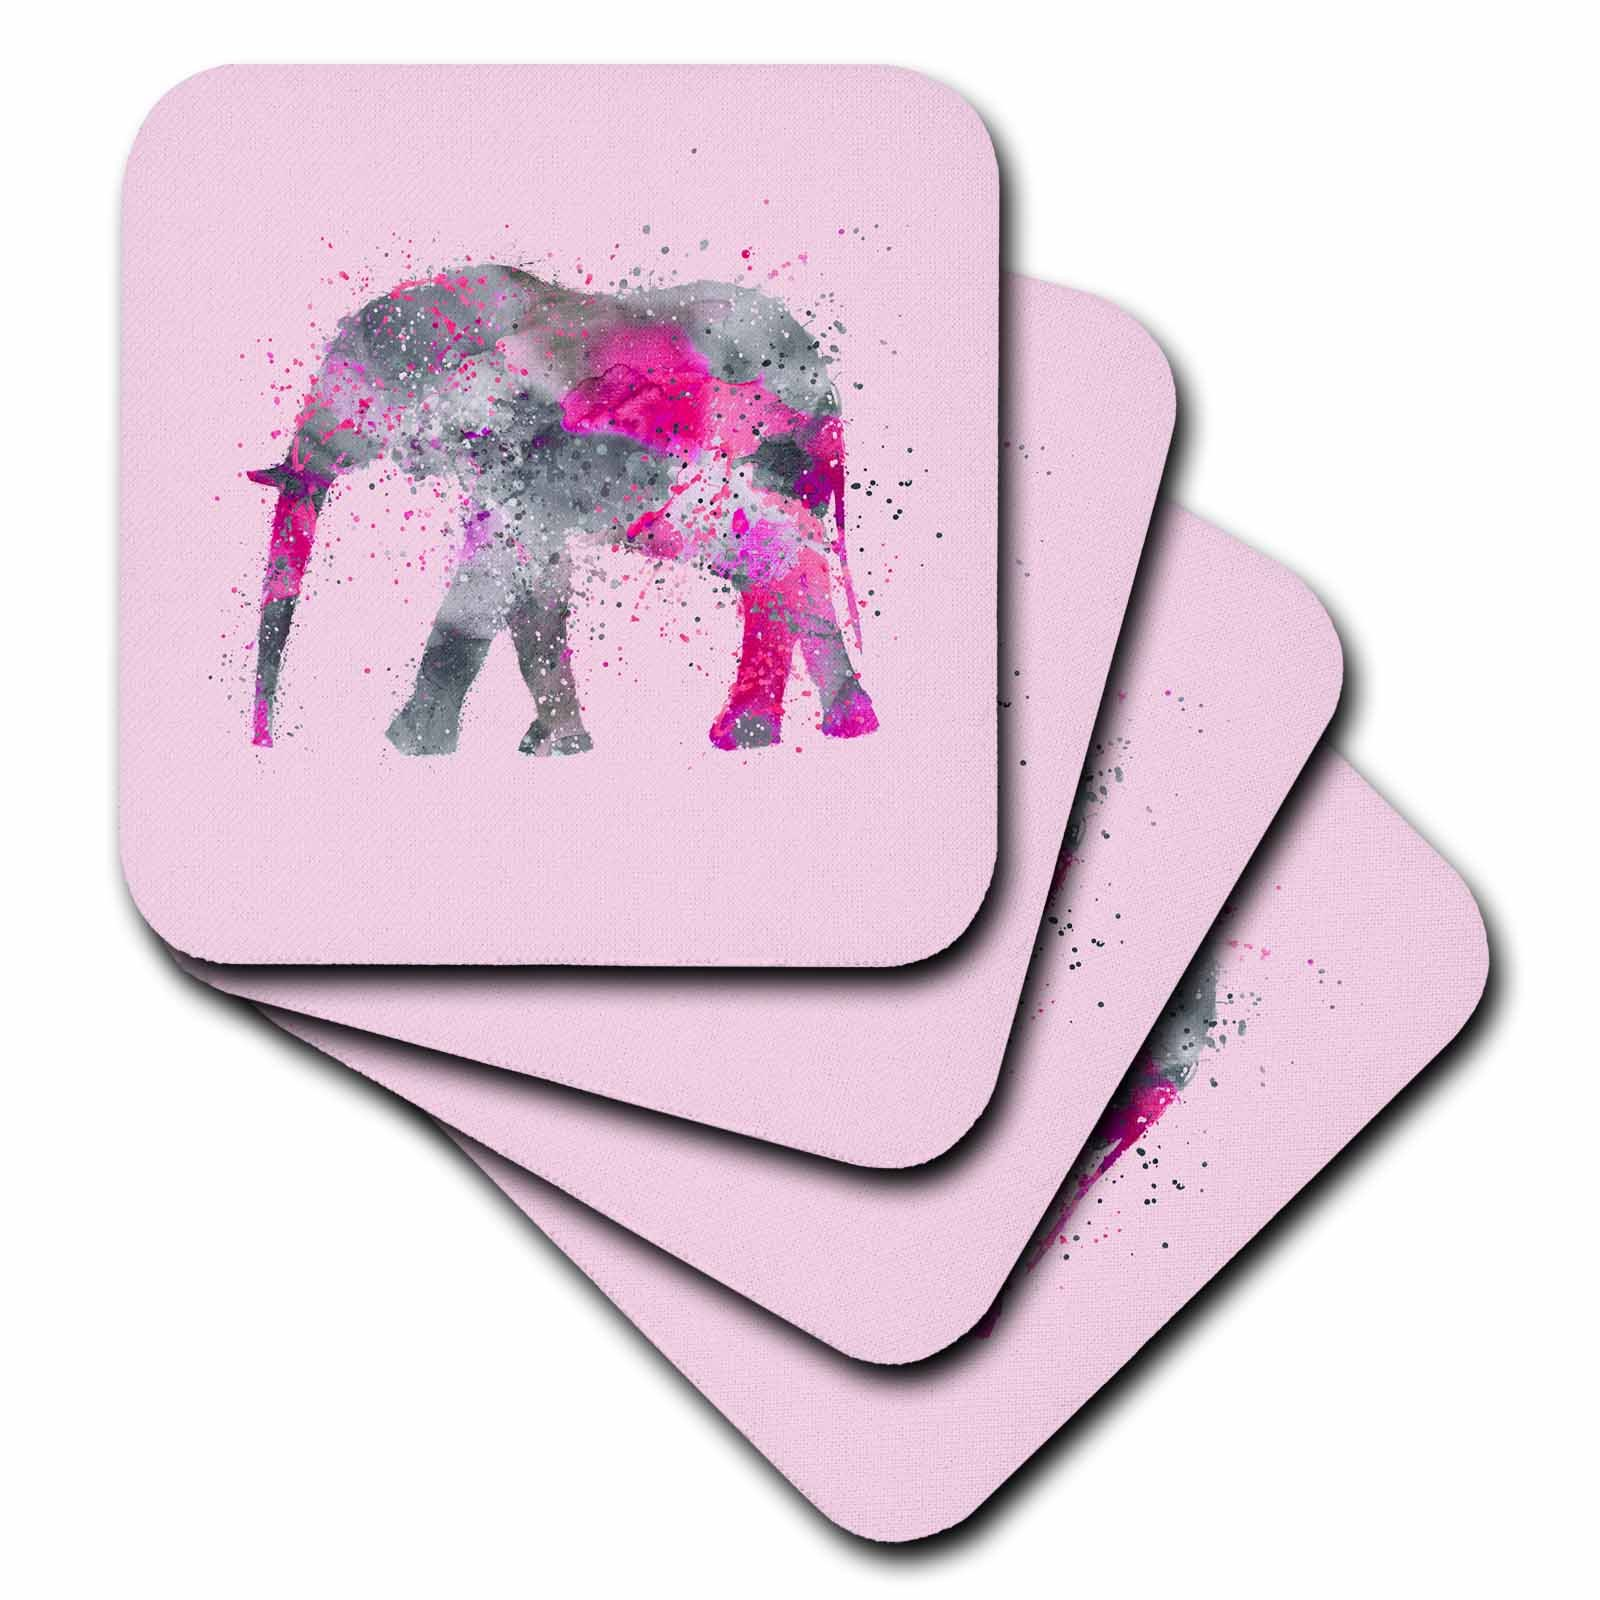 3dRose Andrea Haase Animals Illustration - Pink watercolor elephant artwork - set of 4 Coasters - Soft (cst_262970_1)